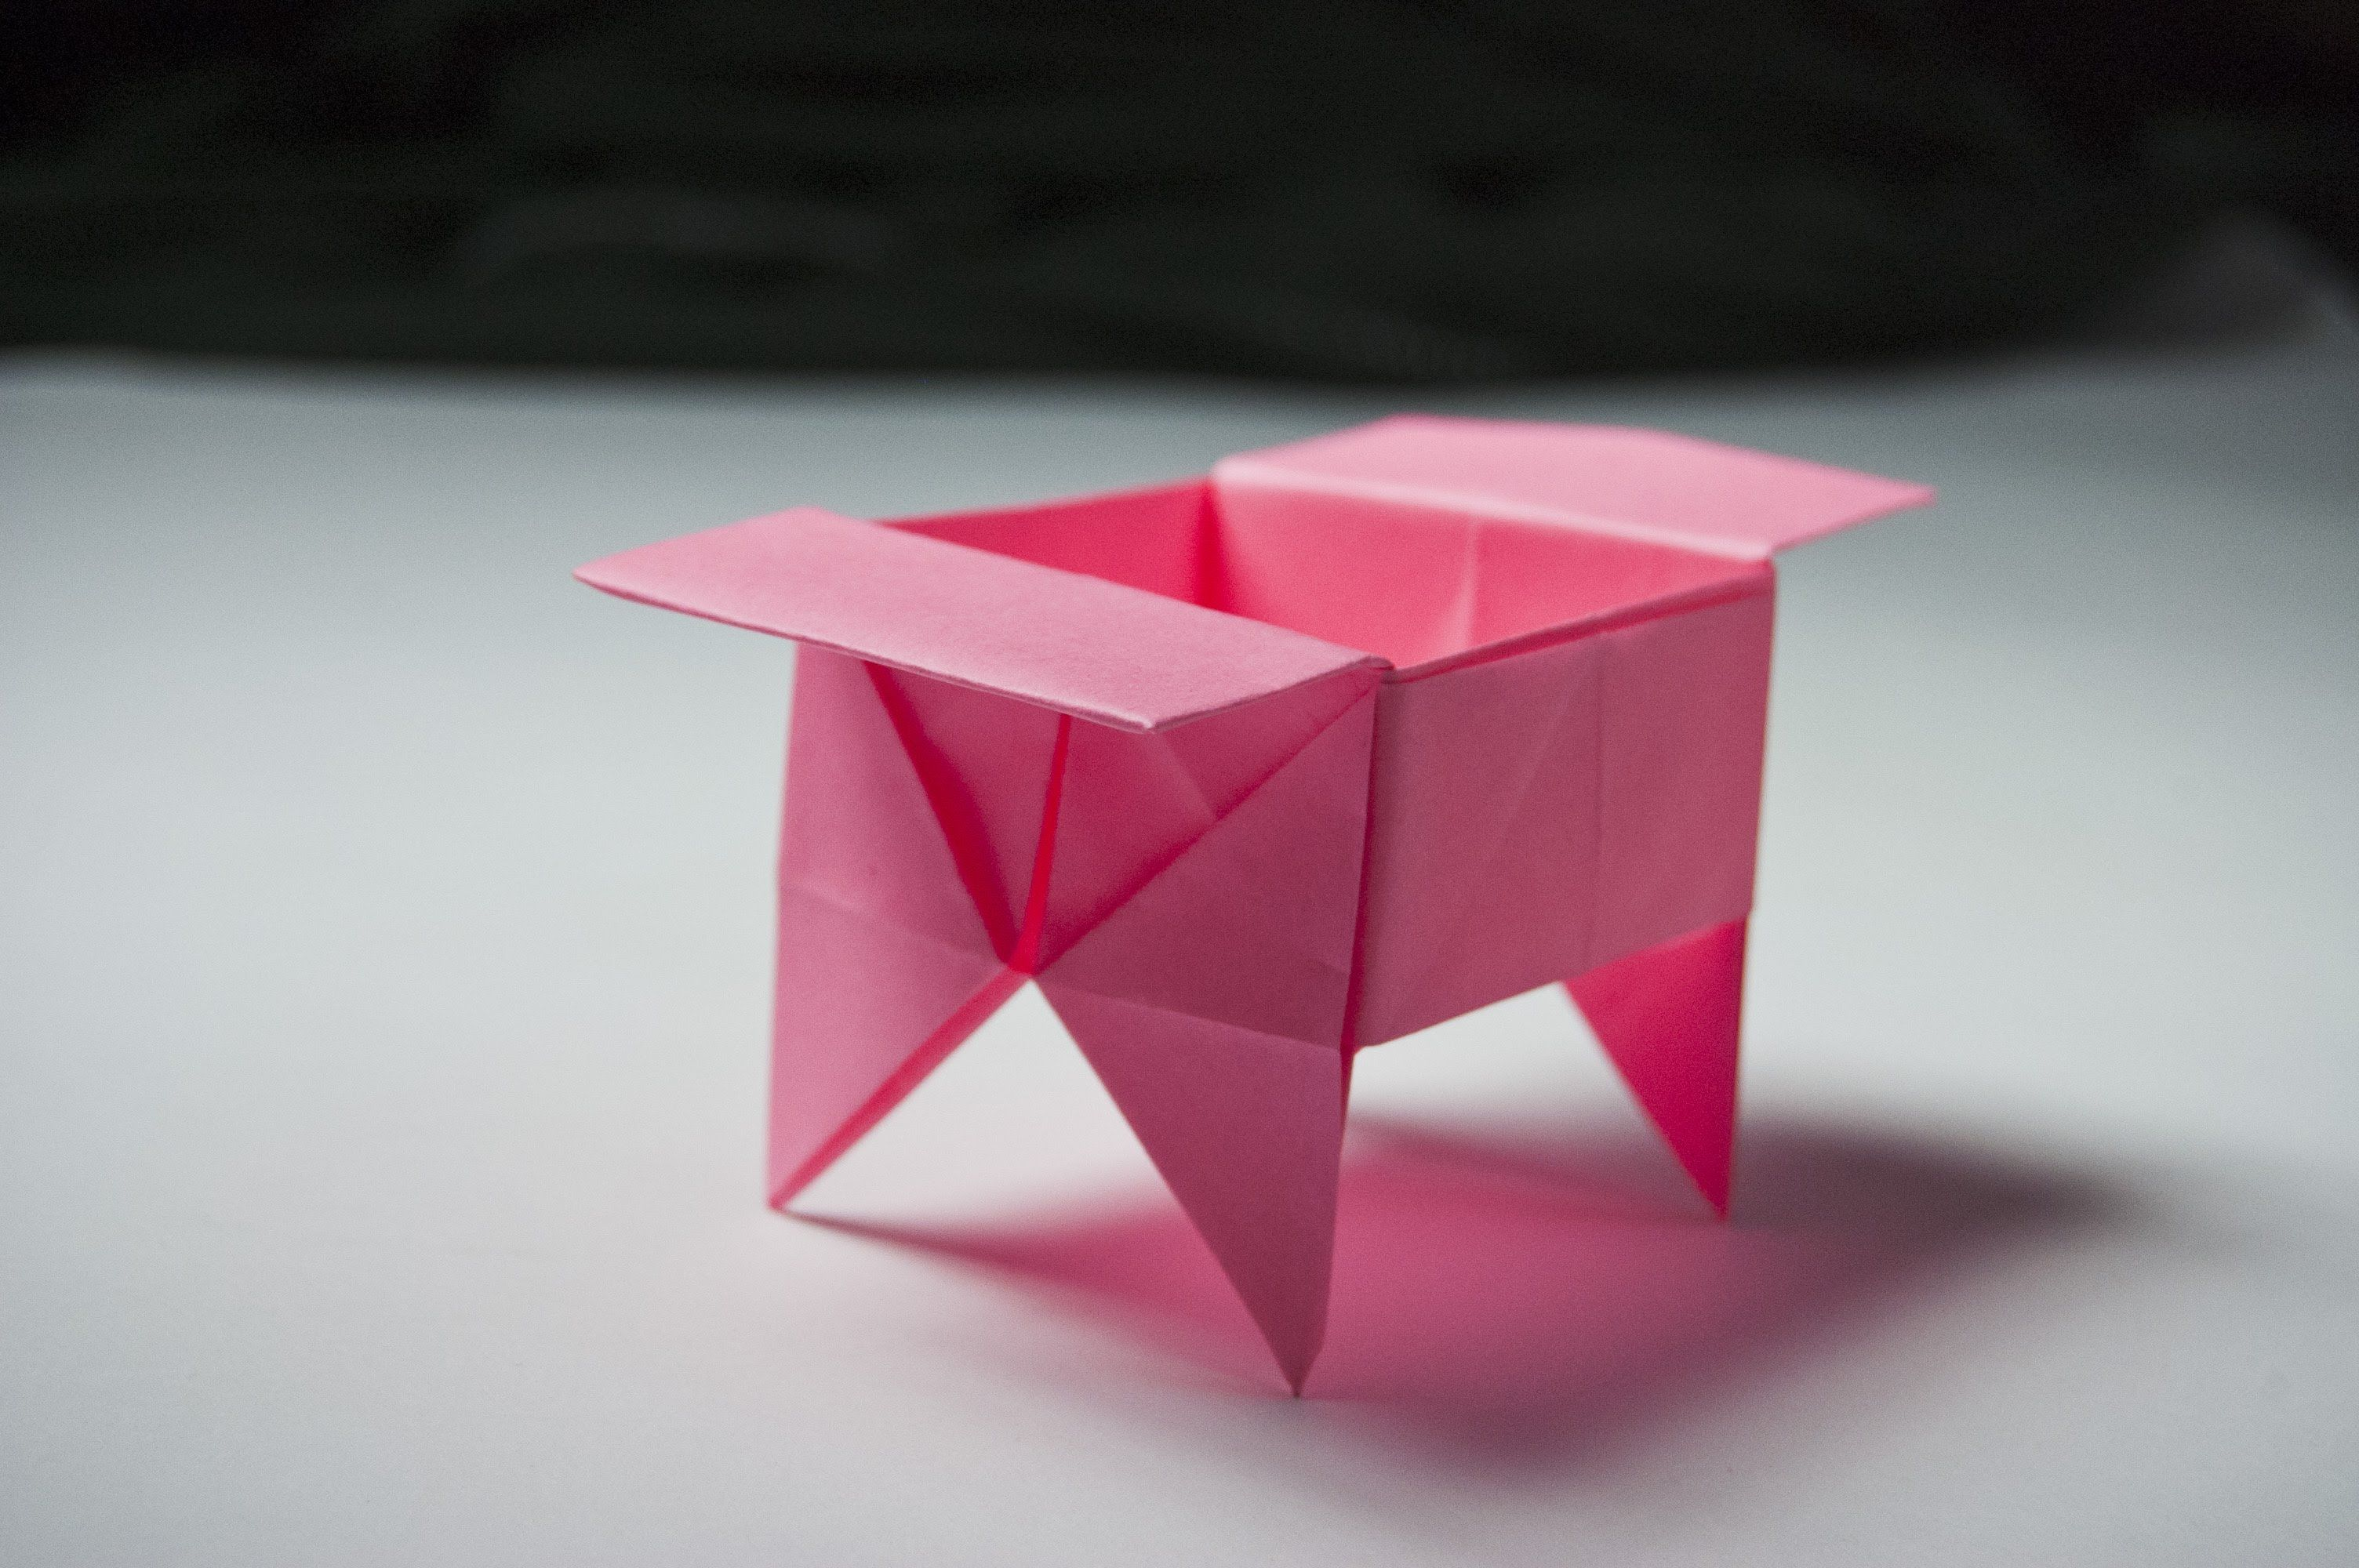 Pin By Le Trung On Paper Stuff Pinterest Origami Boxes Origami